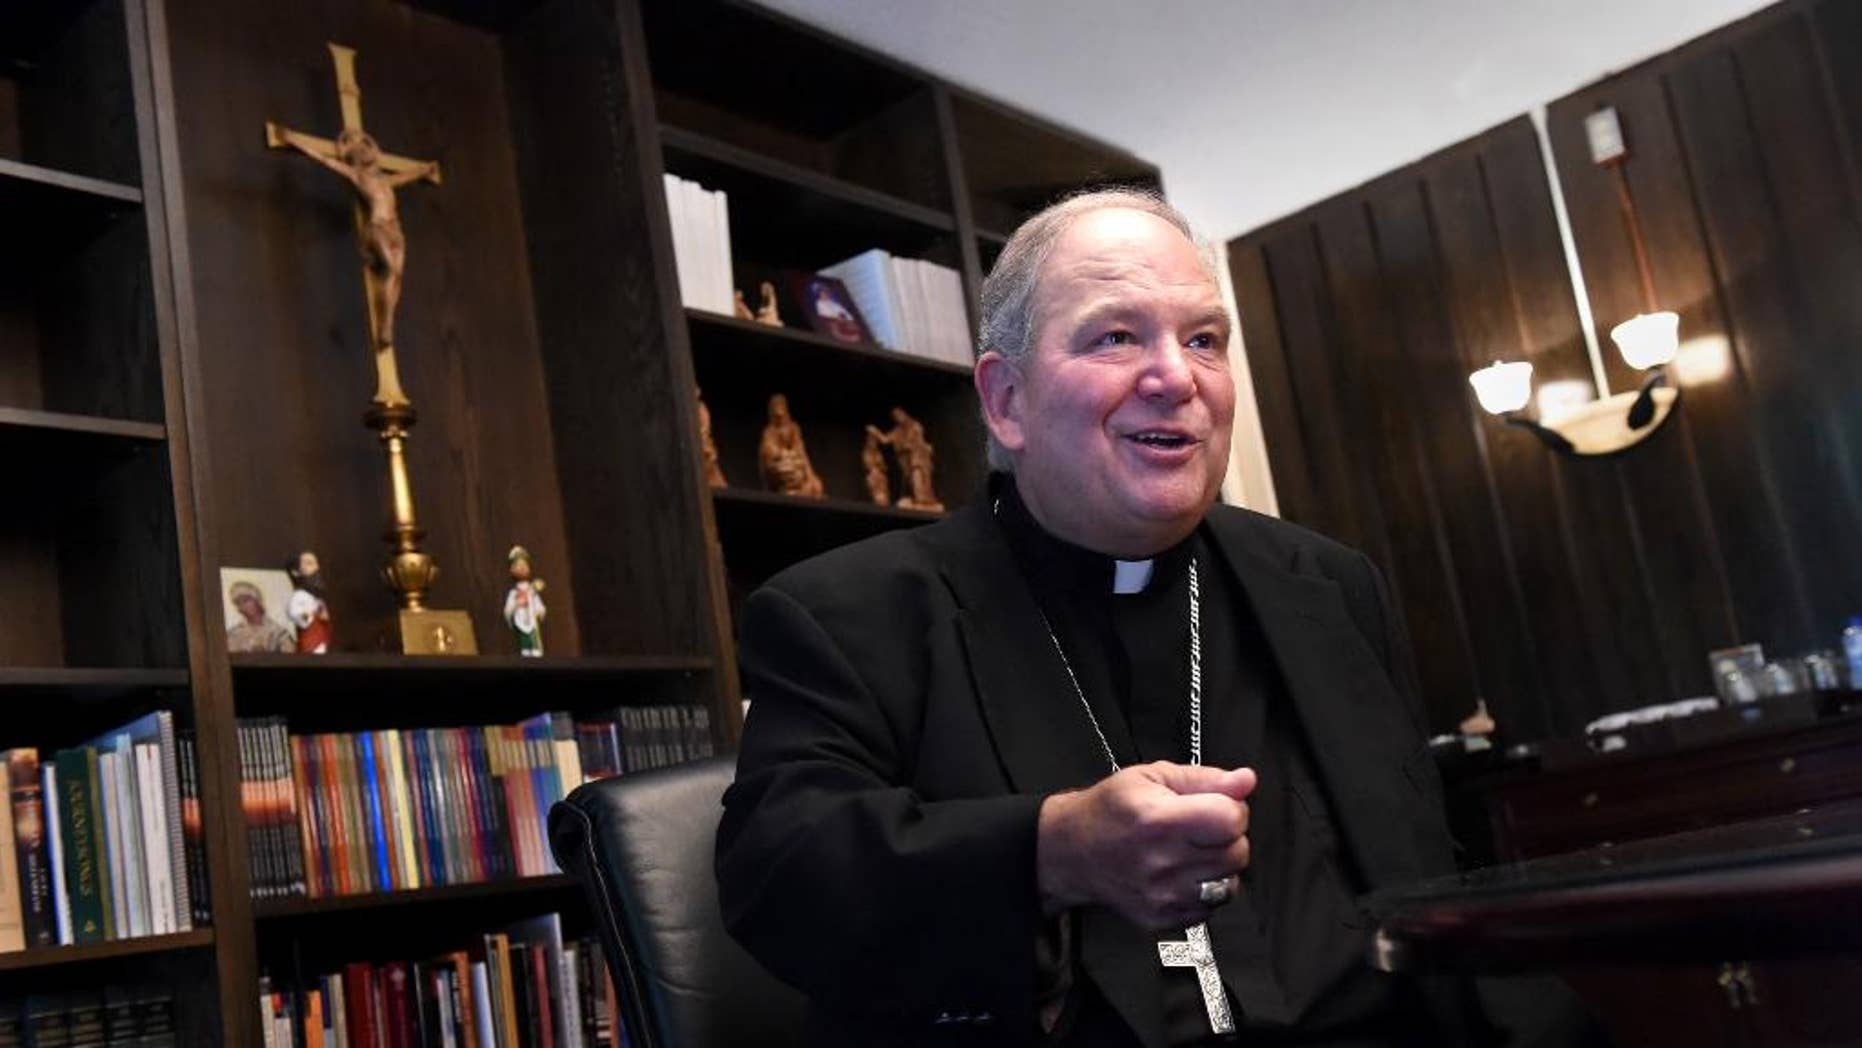 Archbishop Bernard Hebda, interim leader of the Archdiocese of St. Paul and Minneapolis, speaks during an interview in St. Paul, Minn. on Friday, July 10, 2015. Under his predecessor, Archbishop John Nienstedt, the archdiocese was shaken by a clergy sex abuse scandal, criminal charges and bankruptcy. Hebda says he'll collaborate with a wide variety of people on how to formulate a plan to rebuild the archdiocese. He celebrates his first Mass in the archdiocese Sunday at the St. Paul Cathedral. (Jean Pieri/The St. Paul Pioneer Press via AP)